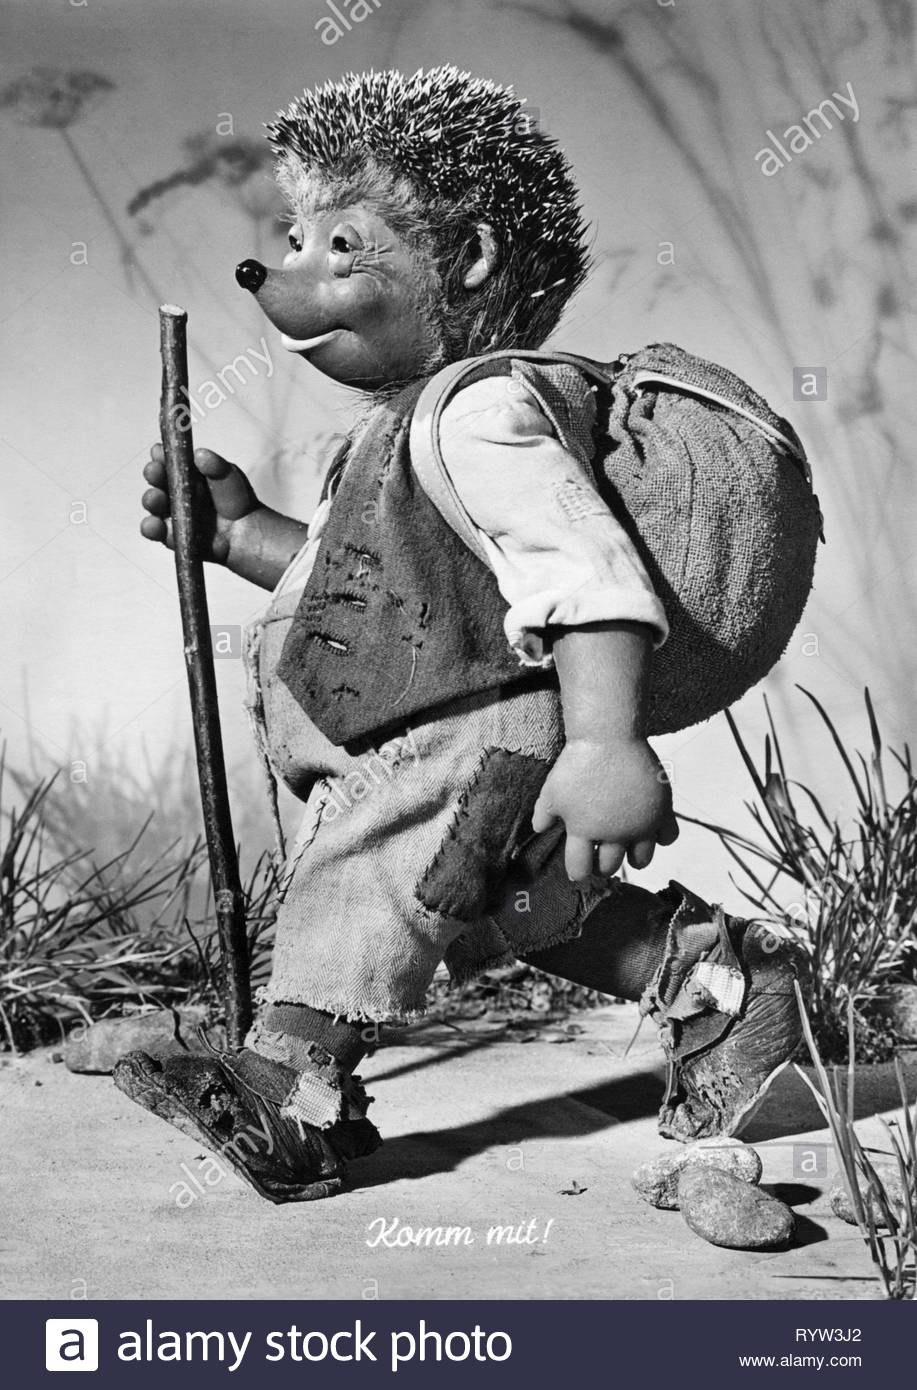 games / toys, puppets, 'Mecki' - The hedgehog, from the movies of the Diehl brothers, 1950s, Additional-Rights-Clearance-Info-Not-Available - Stock Image